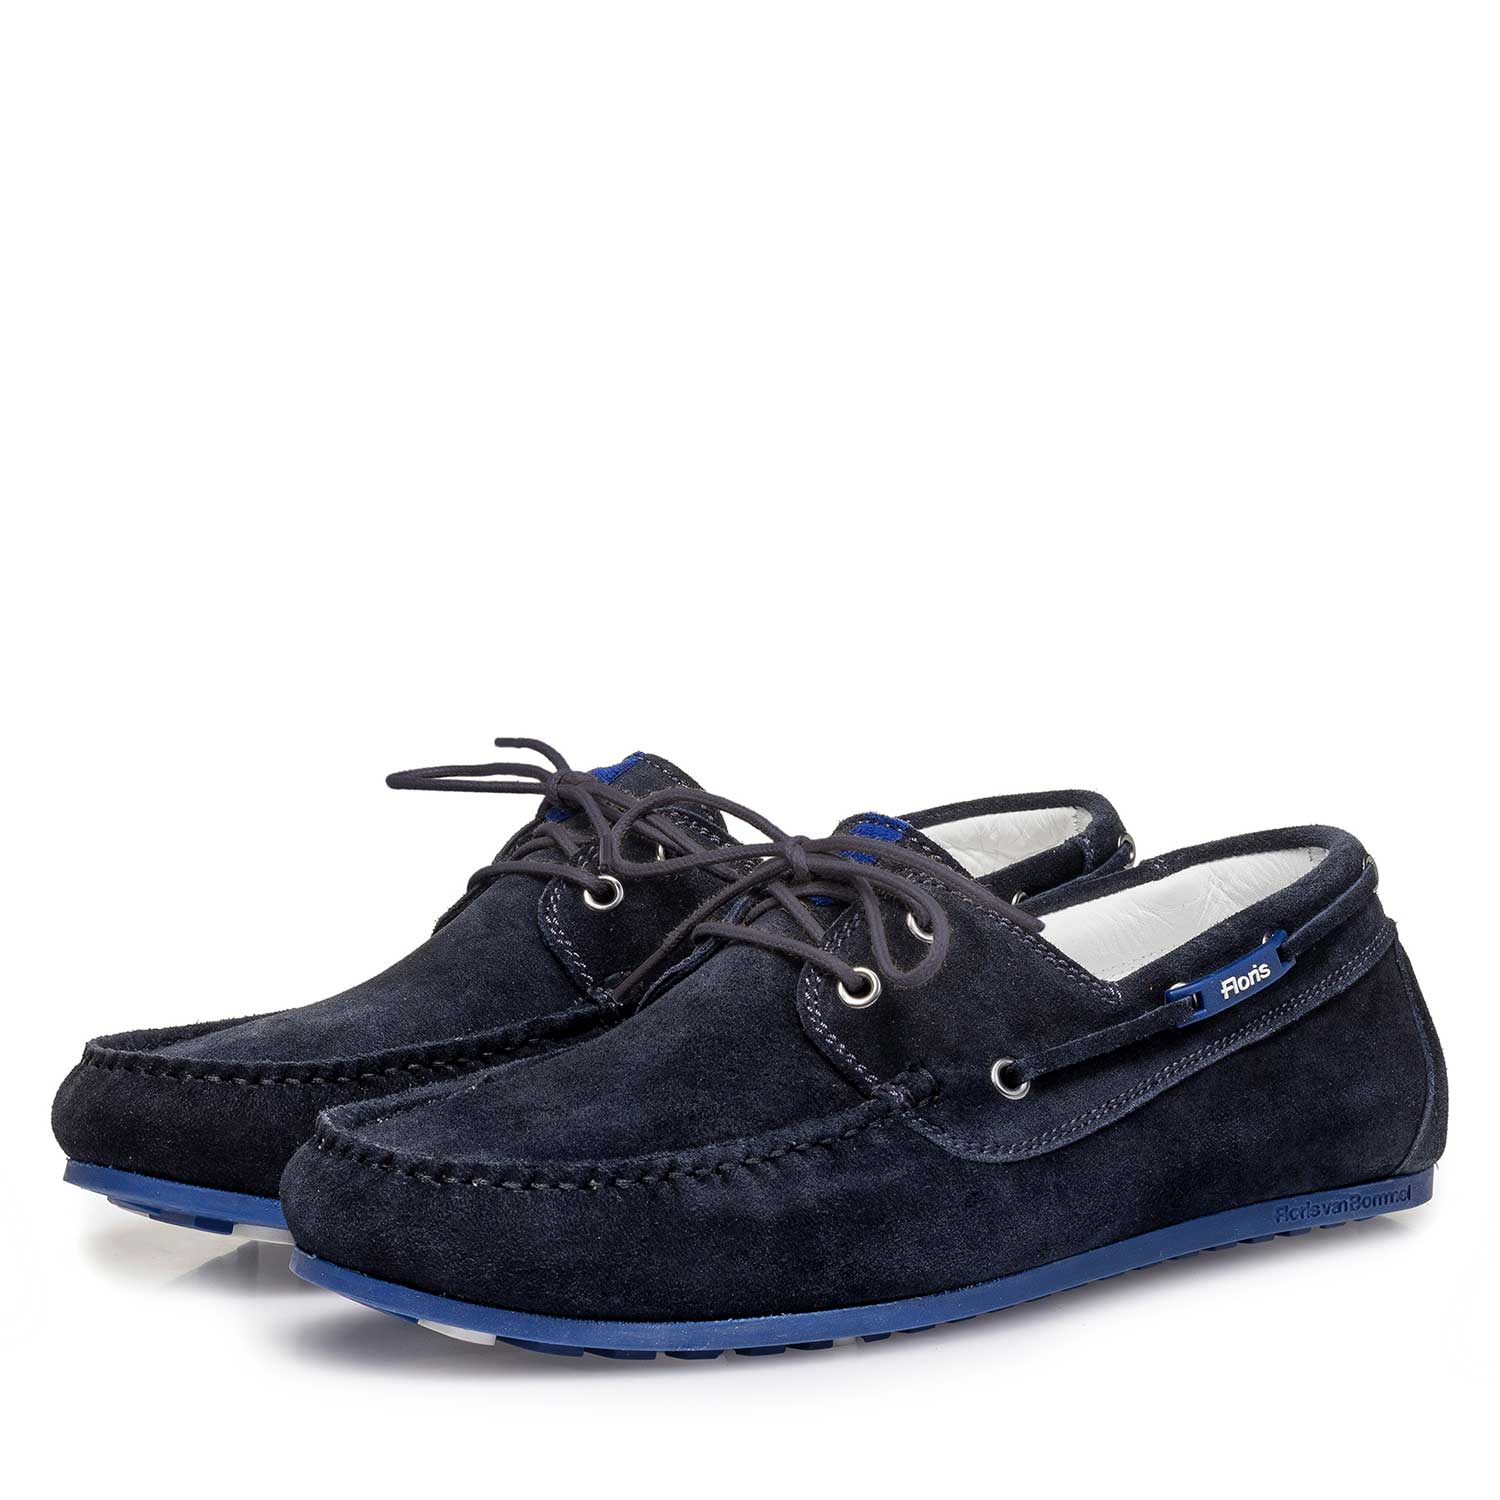 15035/08 - Blue slightly buffed suede leather sailing shoe